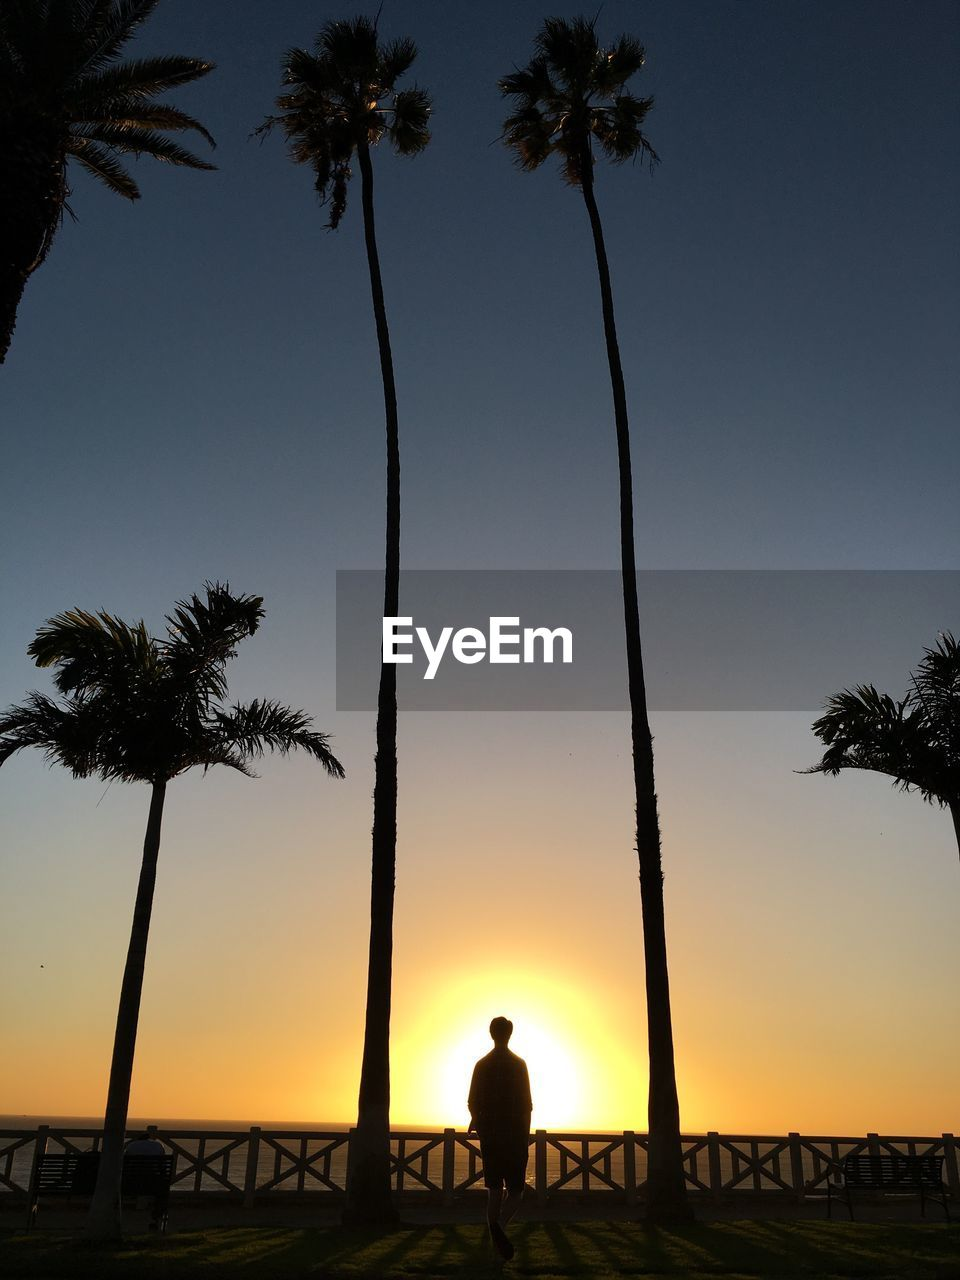 Silhouette man standing against palm trees at beach